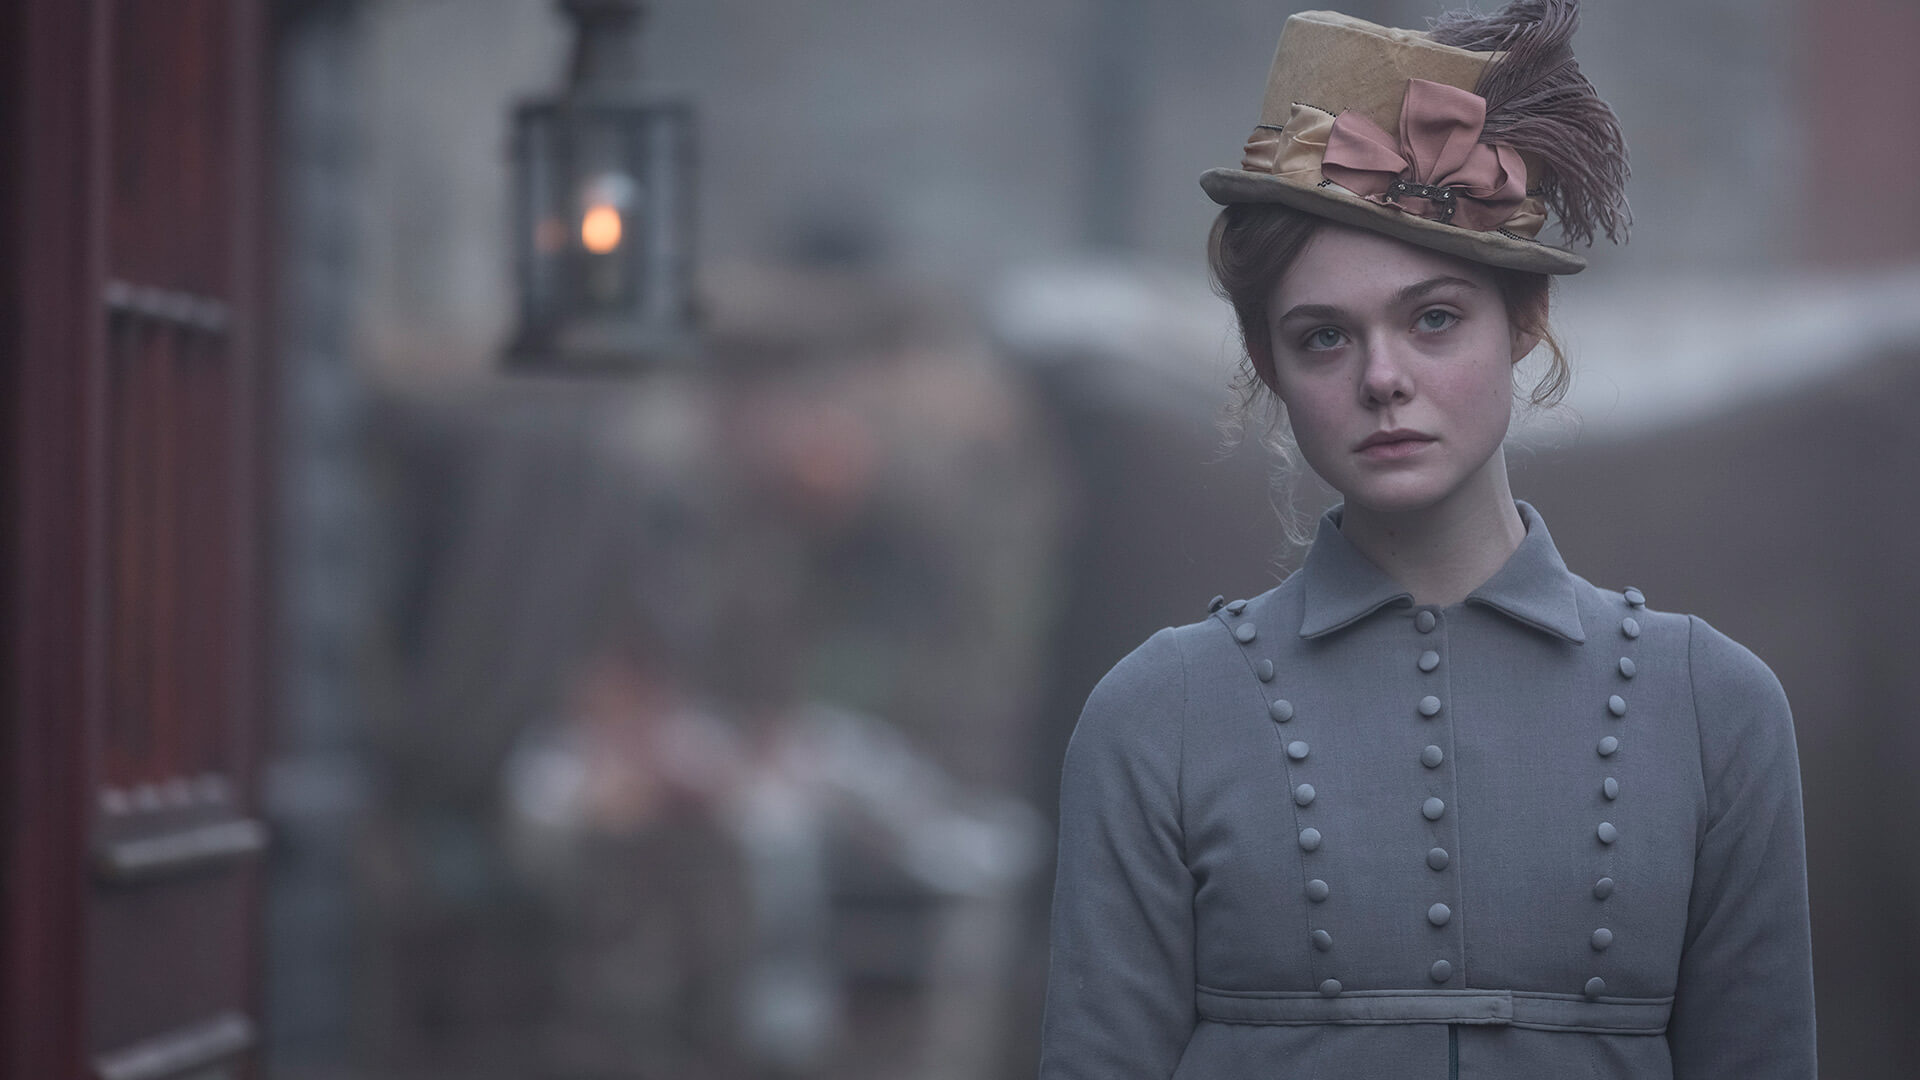 mary-shelley-movie-2017-elle-fanning